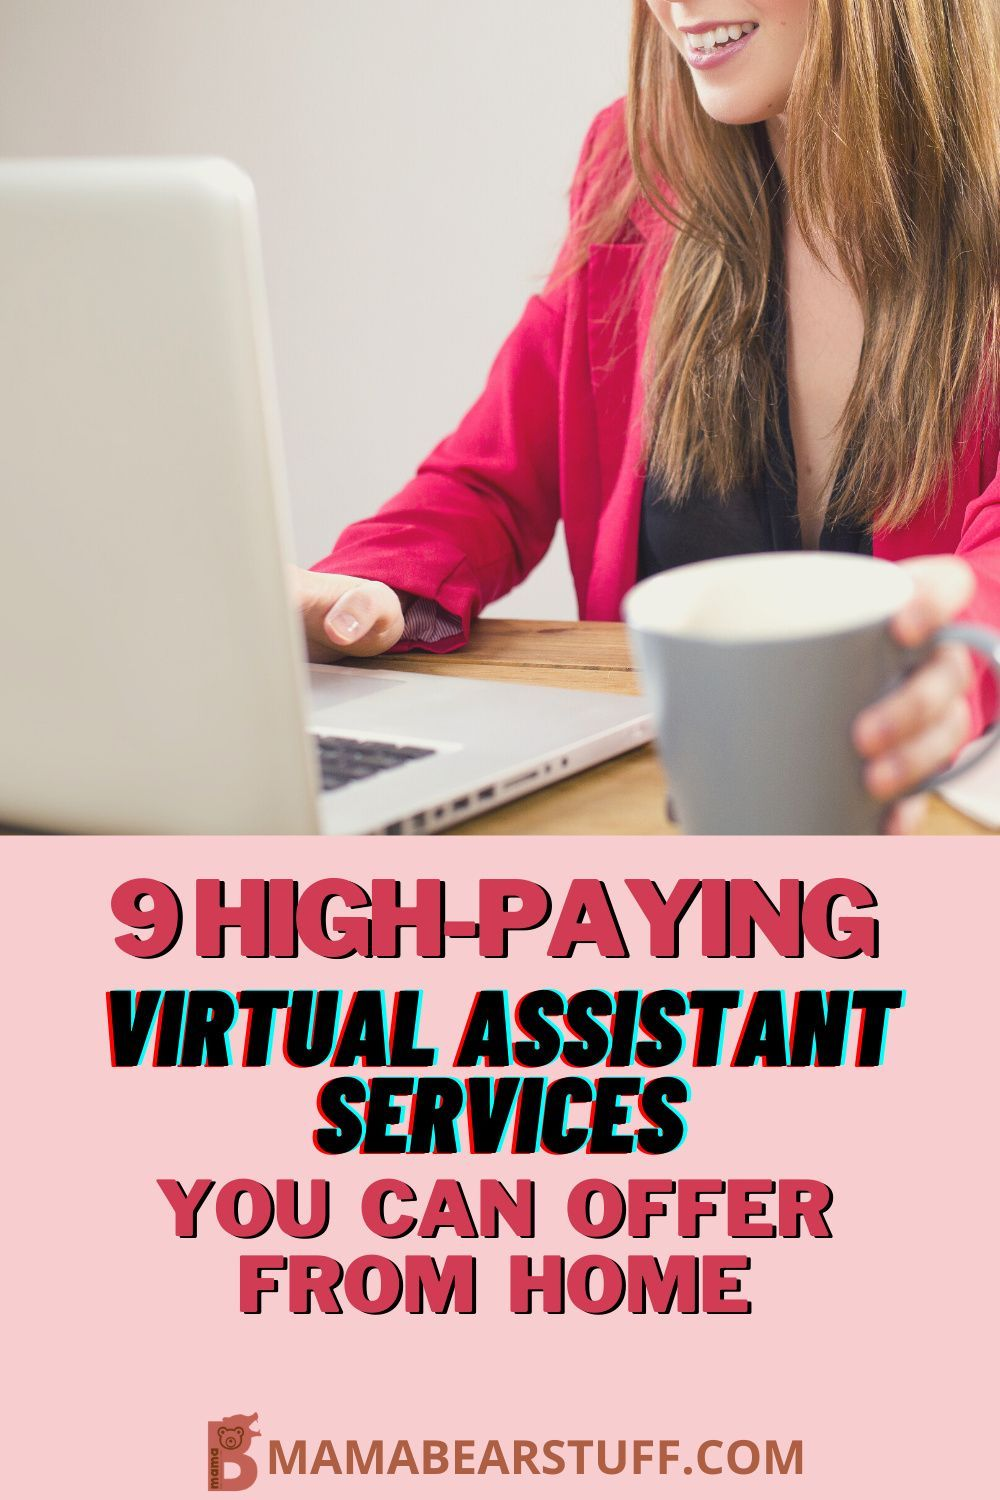 9 highpaying virtual assistant services you can offer